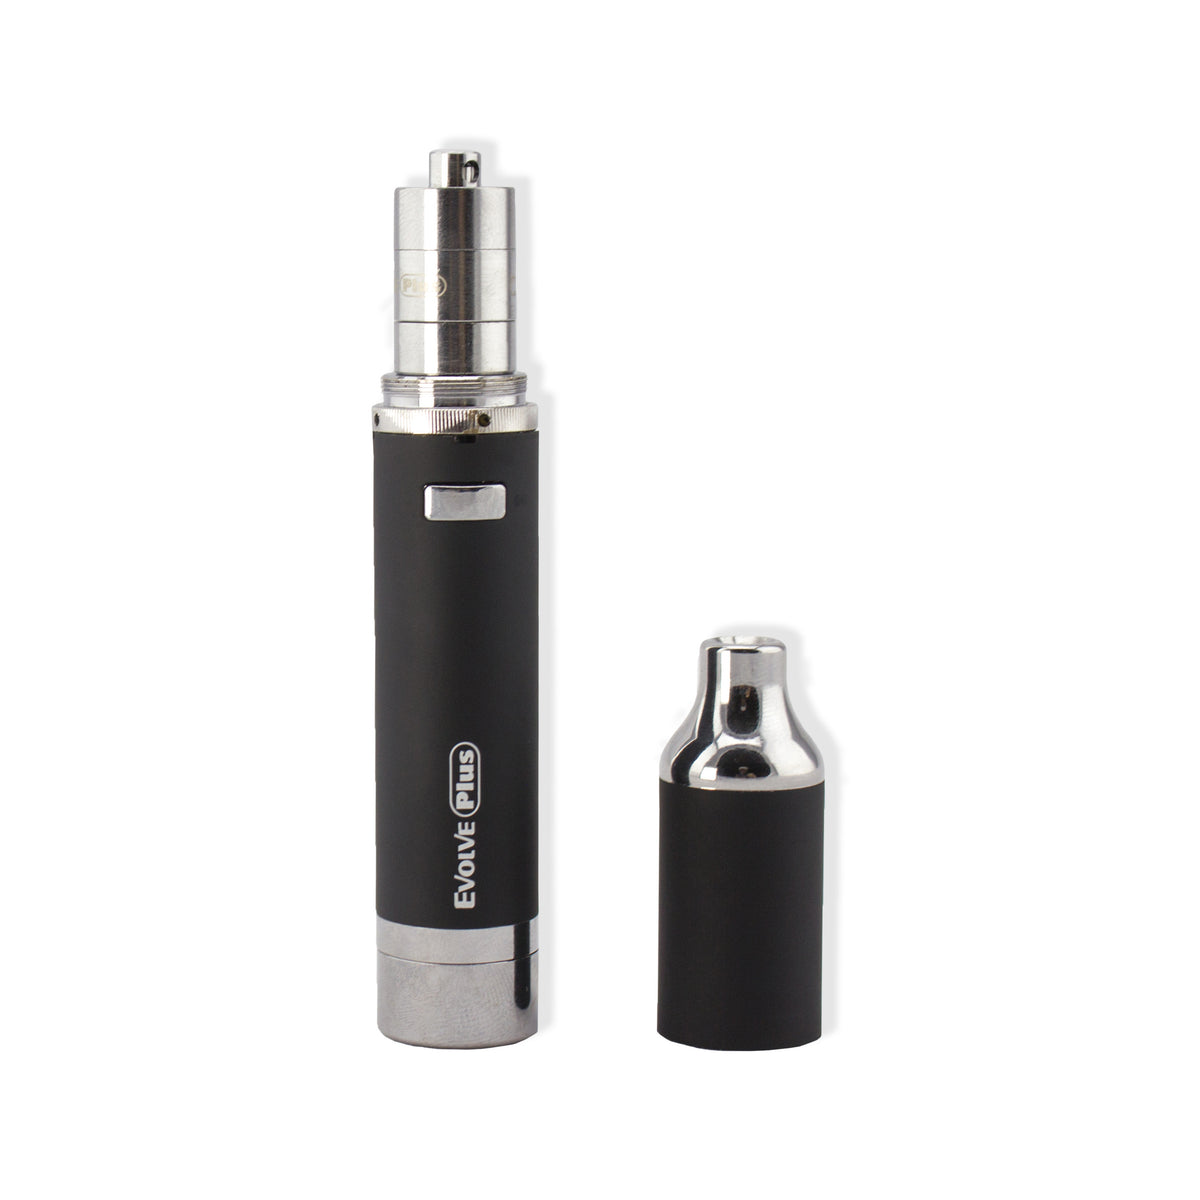 Yocan Evolve PLUS Battery - Black - Fraser 420 Smoke Shop - Surrey, BC - Batteries - Fraser Stop n Go - Glass & Gifts, Bongs, Vaporizers, Vape, Green Leaf Hemp & Blunts